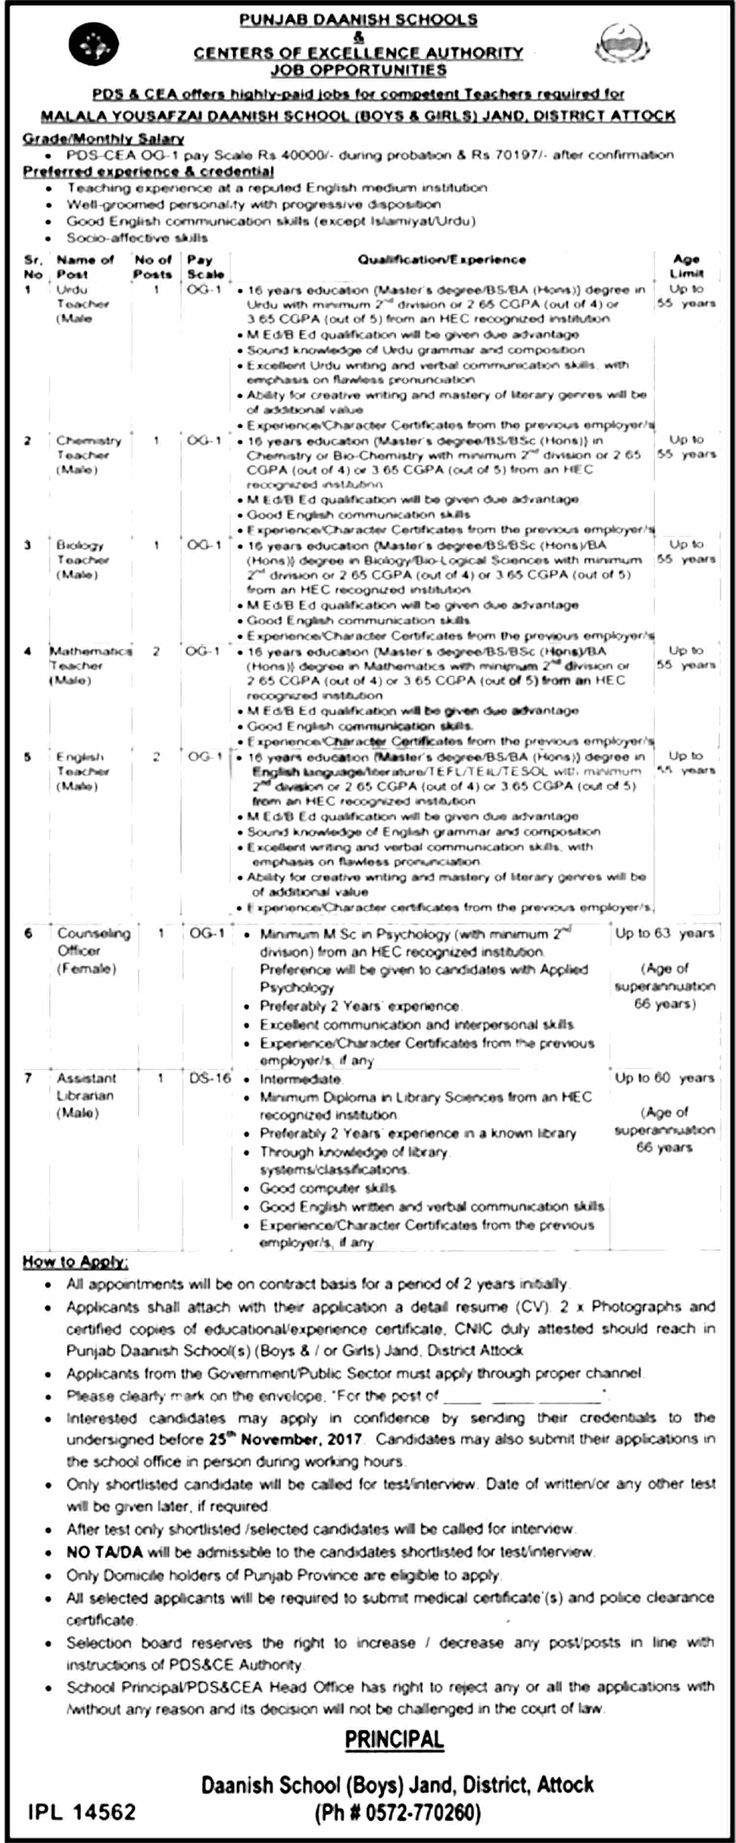 Punjab Daanish Schools And Centers Of Excellence Authority PDS & CEA Jobs 2017 In Attock For Teachers And Assistant… http://www.jobsfanda.com/punjab-daanish-schools-centers-excellence-authority-pds-cea-jobs-2017-attock-teachers-assistant-librarian/